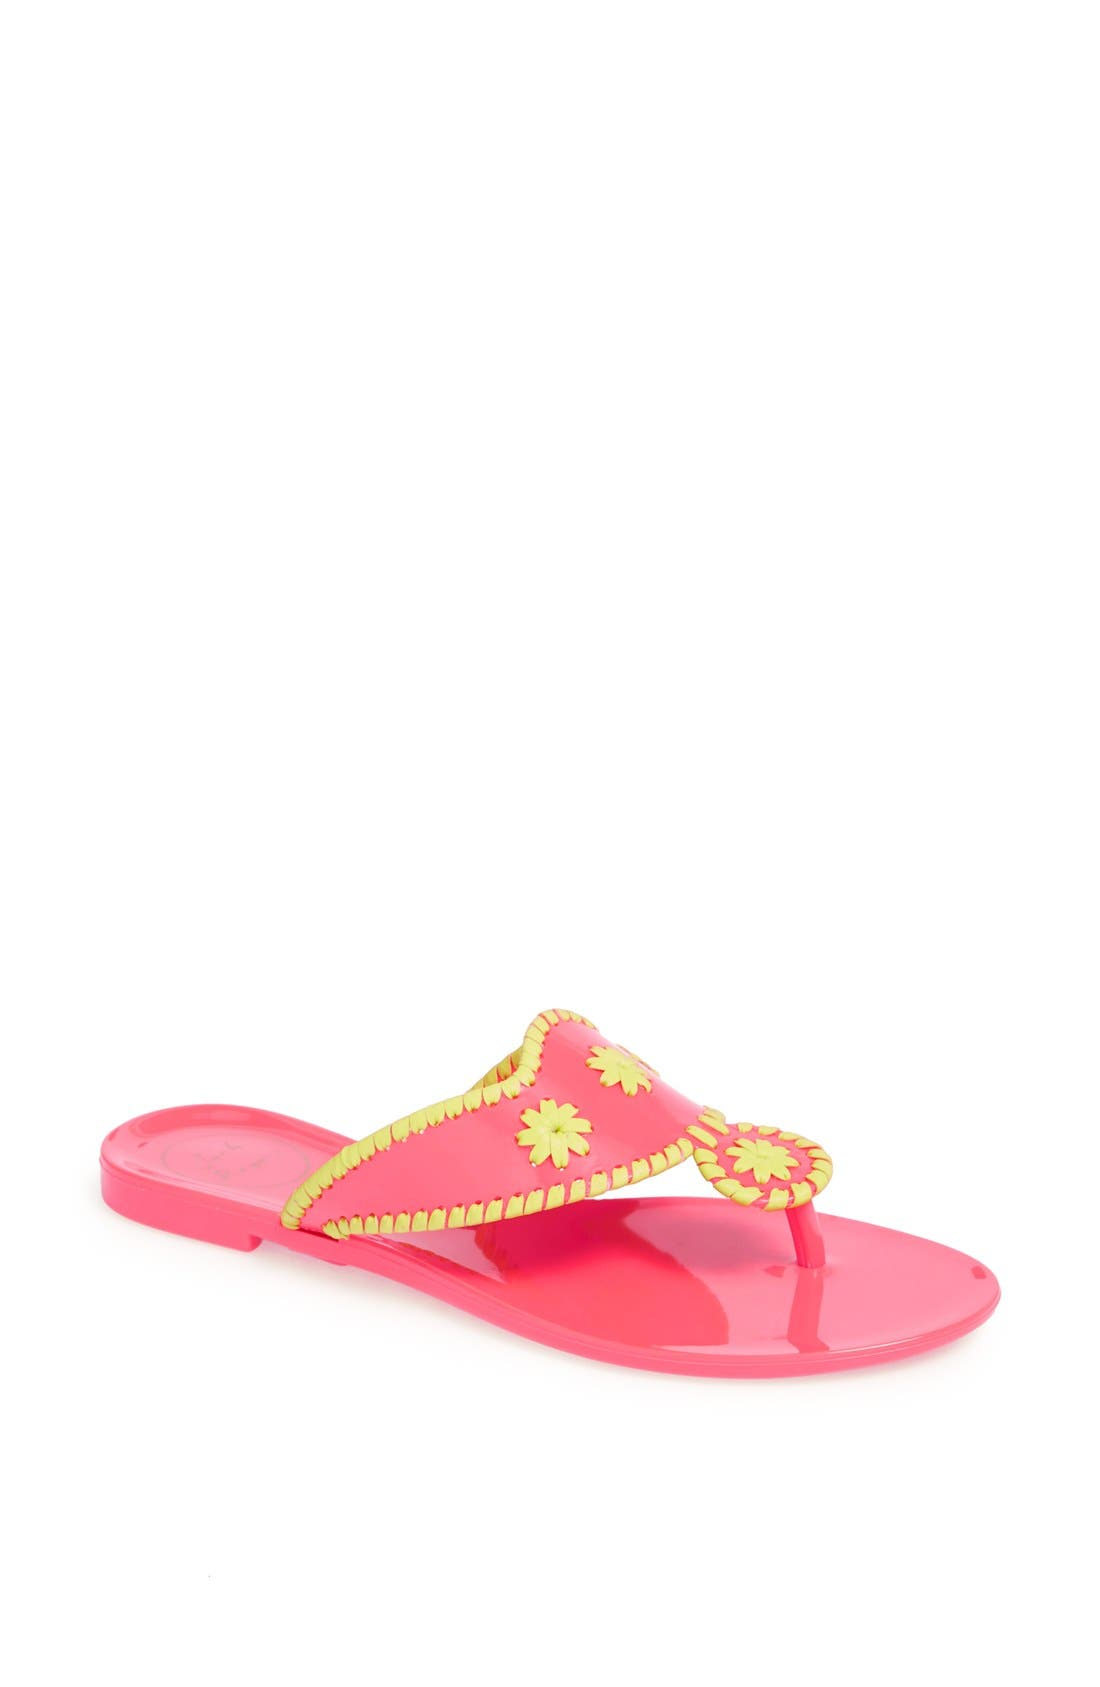 Alternate Image 1 Selected - Jack Rogers 'Jr' Jelly Sandal